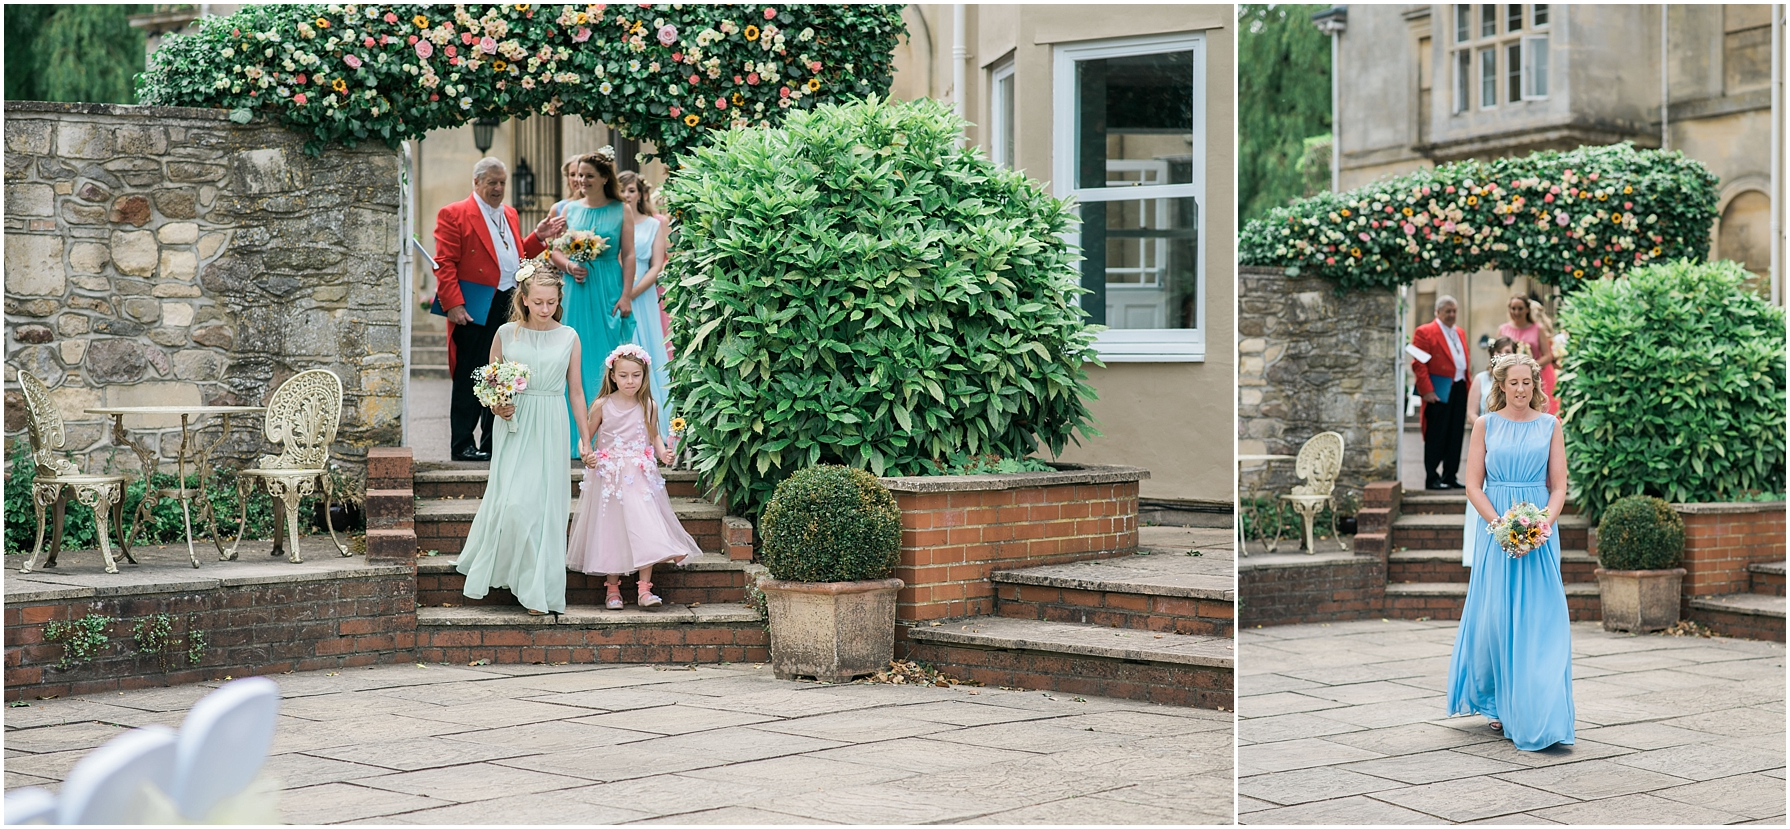 bridesmaids walking through the archway to outside ceremony at chiseldon house hotel